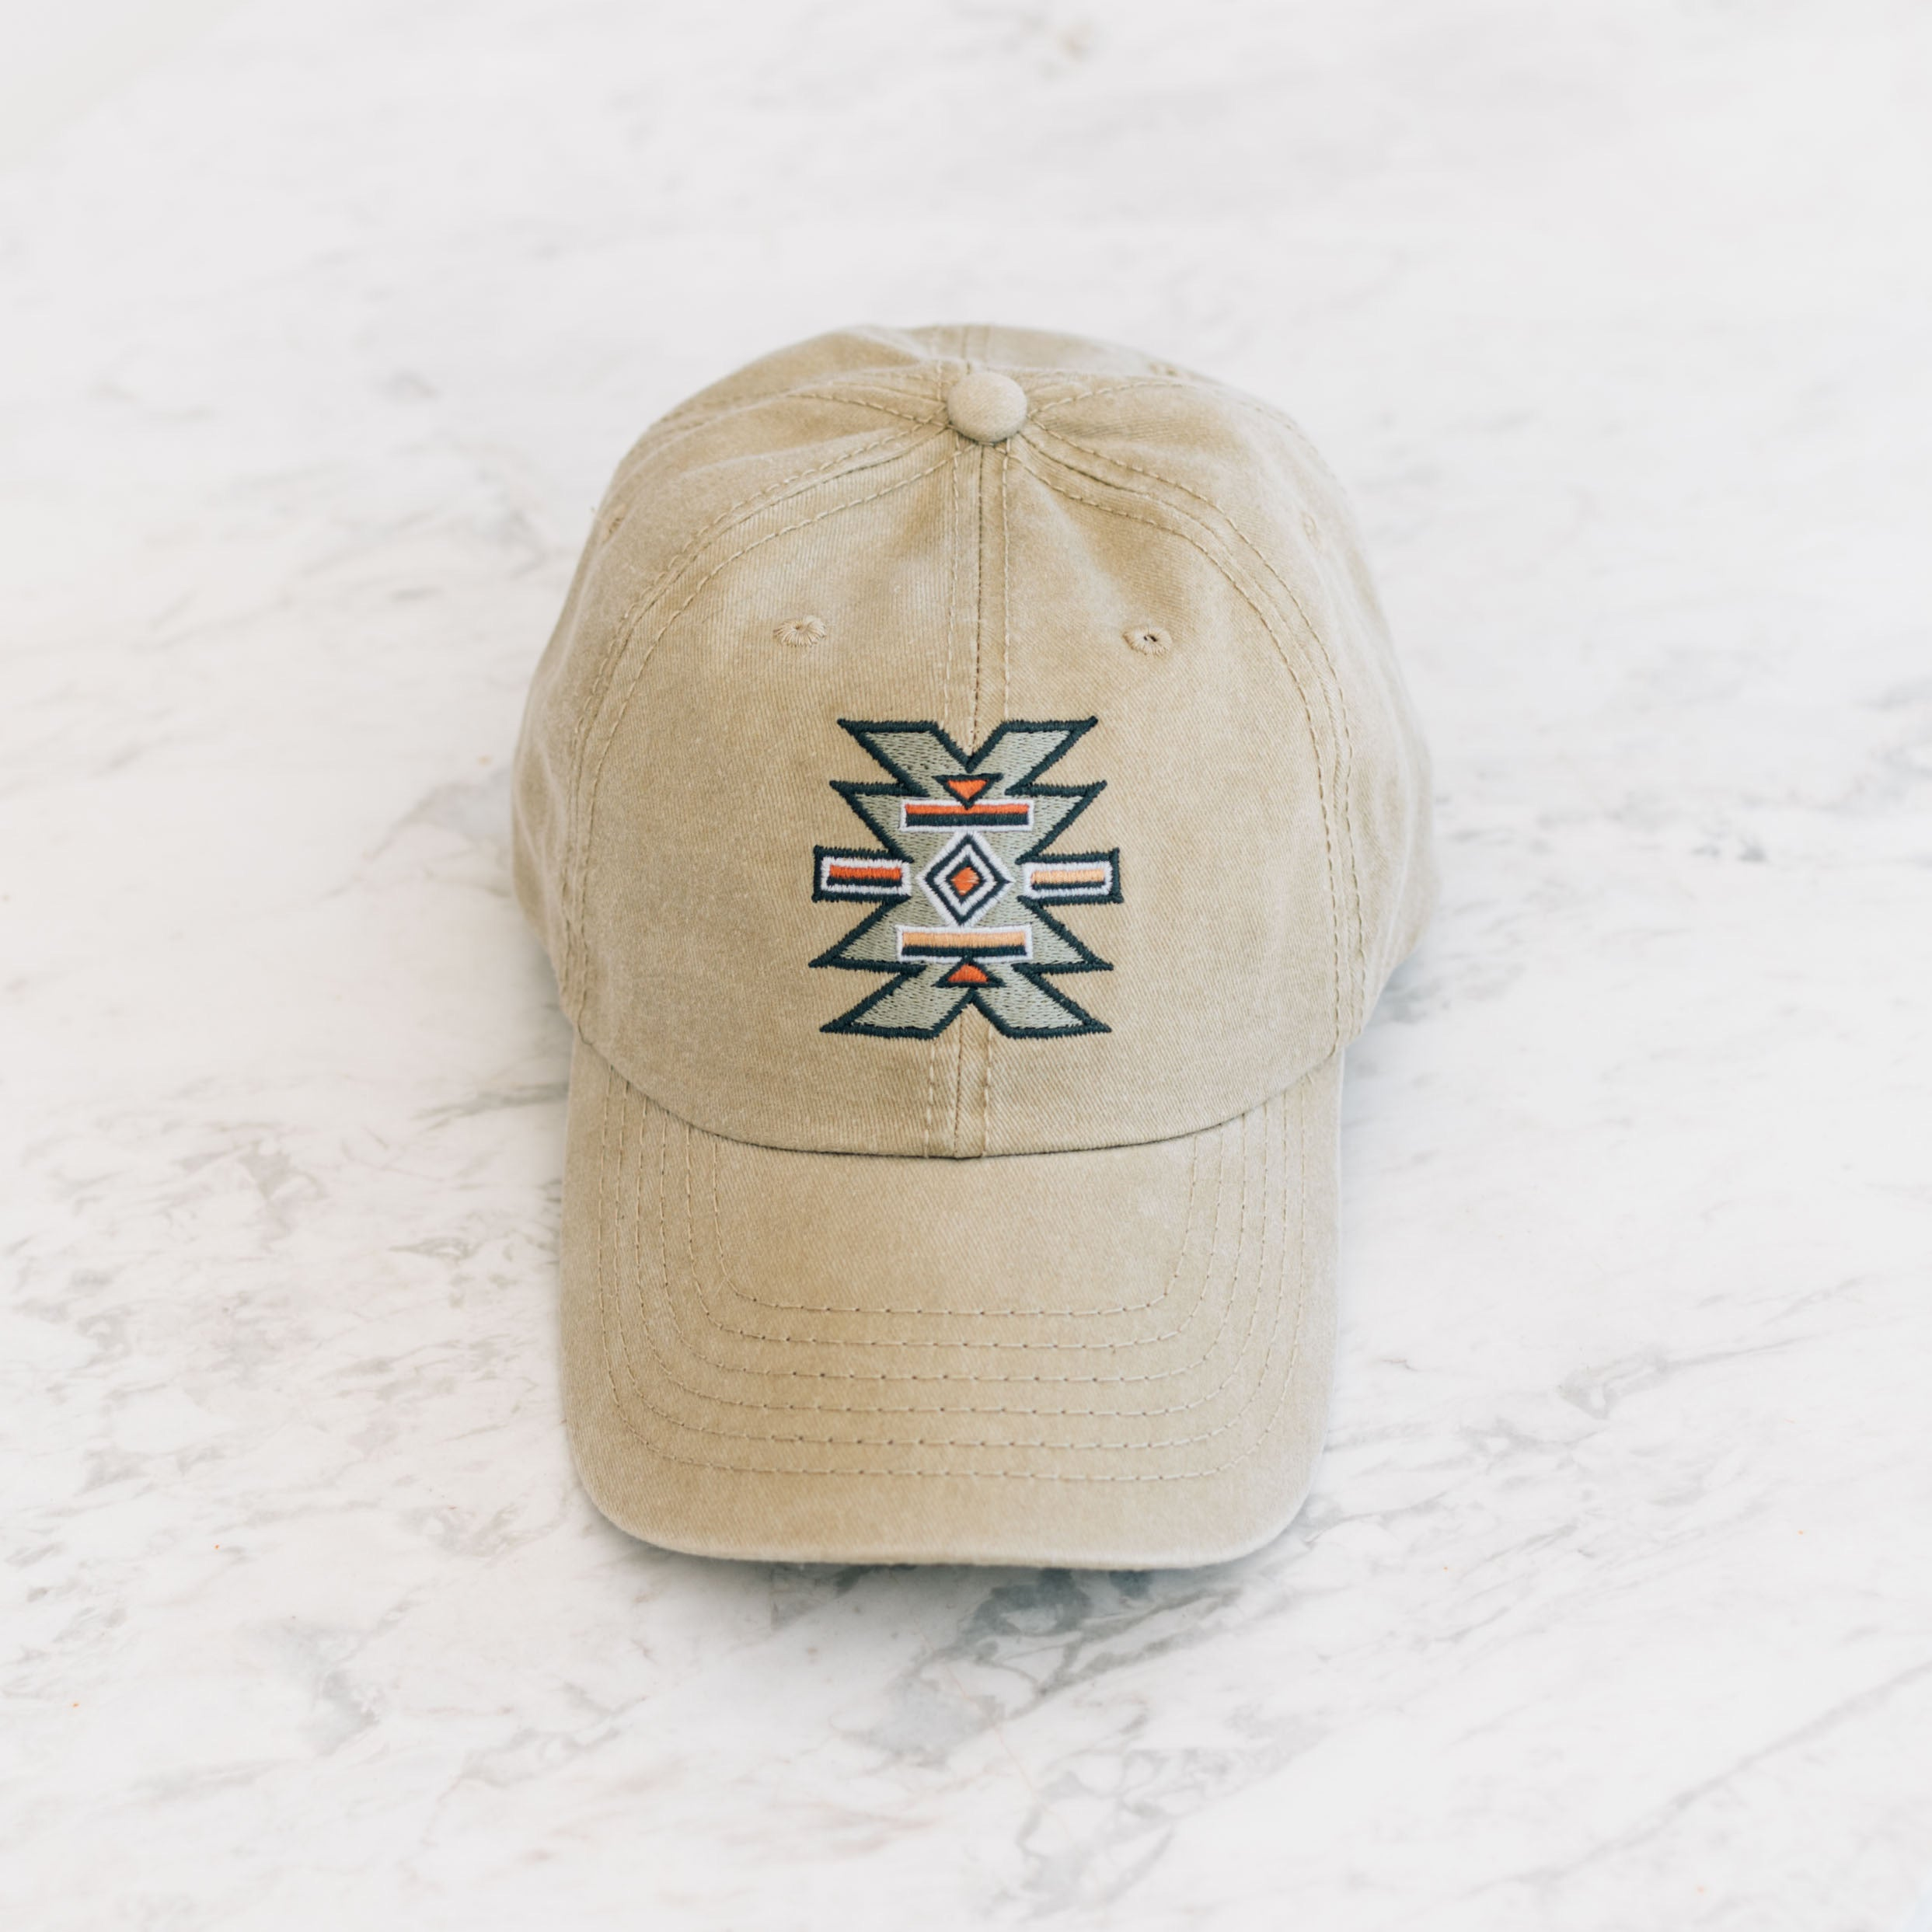 INANI • Stone Heritage Cap - Stokedthebrand. Lifestyle products for outdoor adventures. Made in South Africa